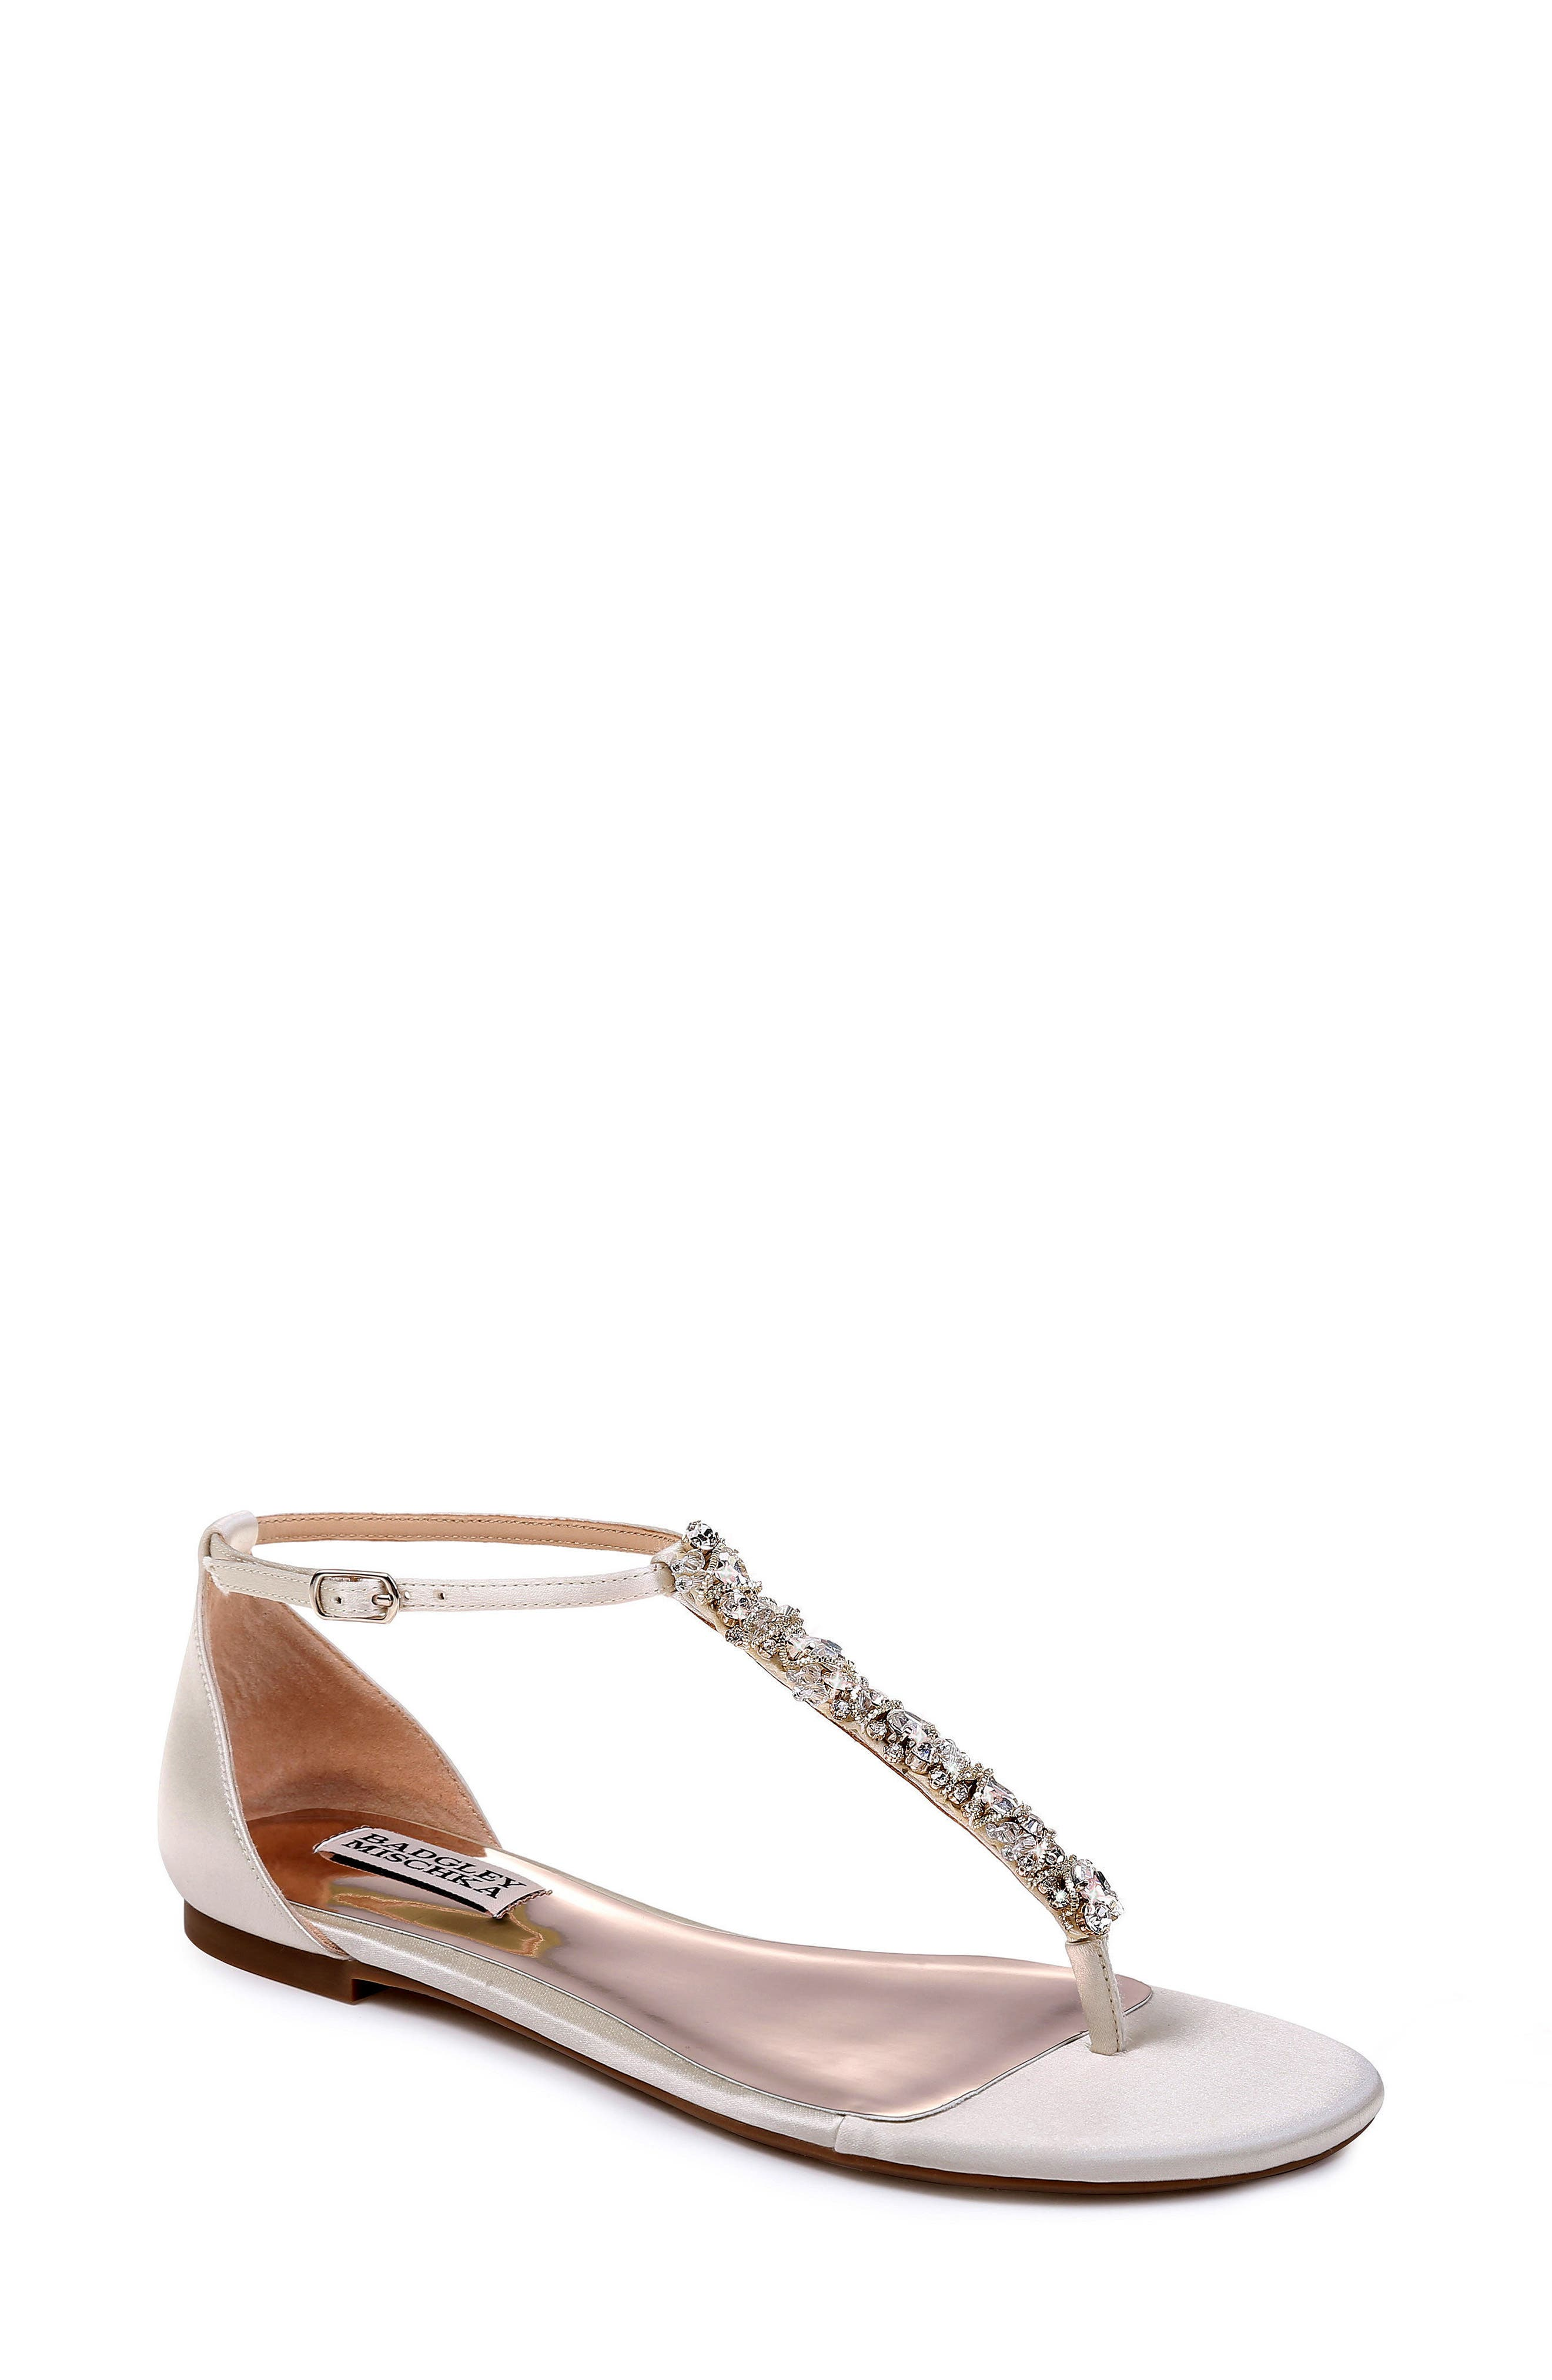 9941d9523d25 Crystals and beads shimmer and shine along the T-strap of an elegant  leather sandal. Style Name  Badgley Mischka Holbrook T-Strap Sandal (Women).